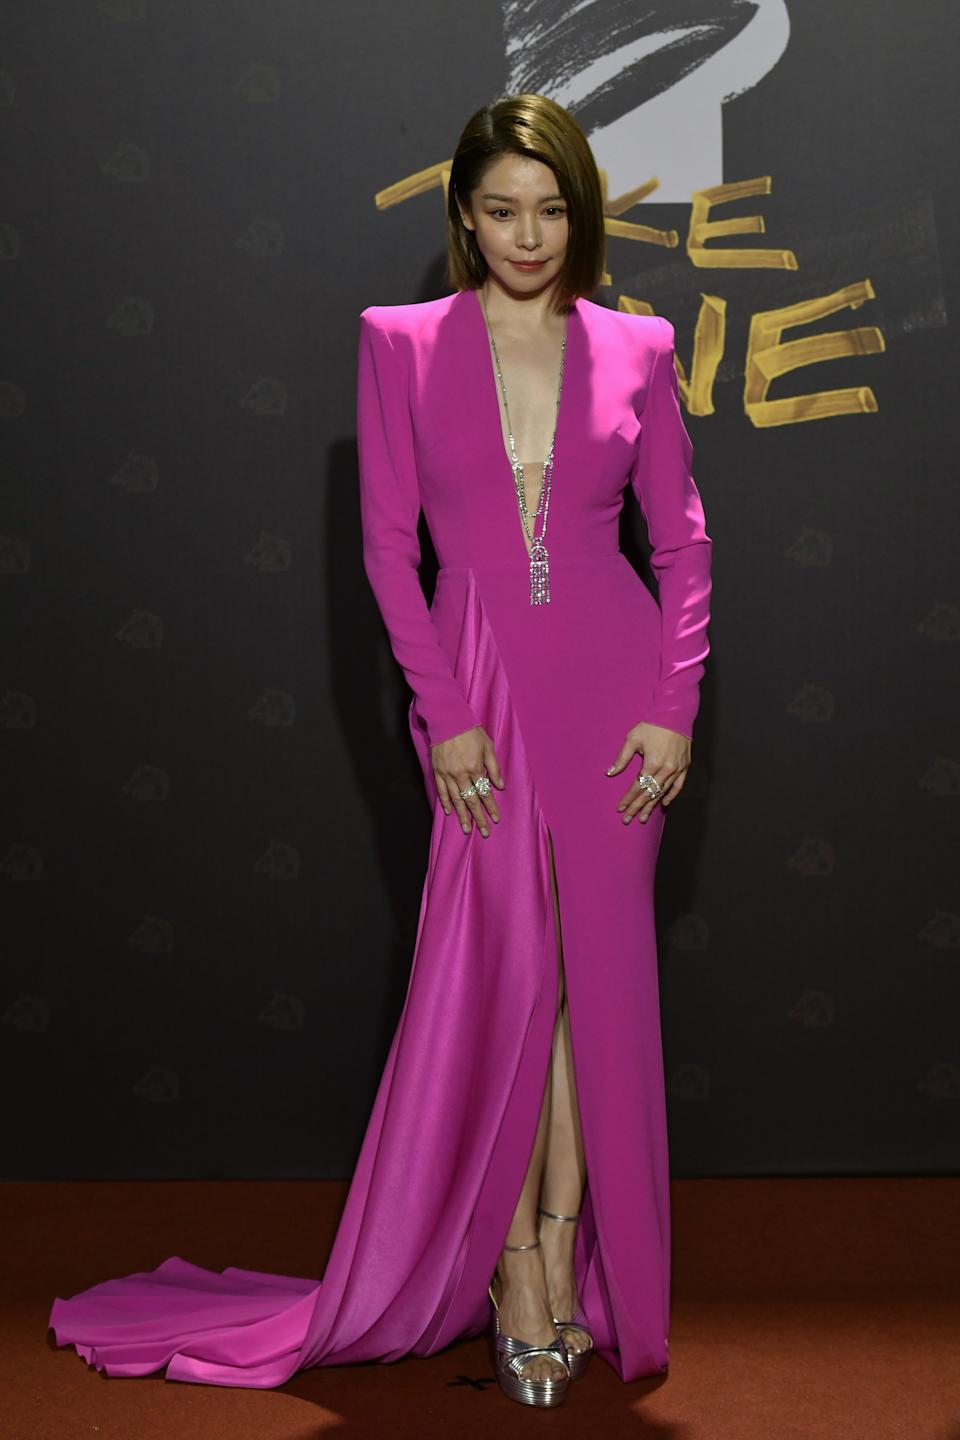 Taiwanese actress Vivian Hsu arrives on the red carpet at the 57th Golden Horse film awards, dubbed the Chinese 'Oscars', in Taipei on November 21, 2020. (Photo by SAM YEH / AFP) (Photo by SAM YEH/AFP via Getty Images)